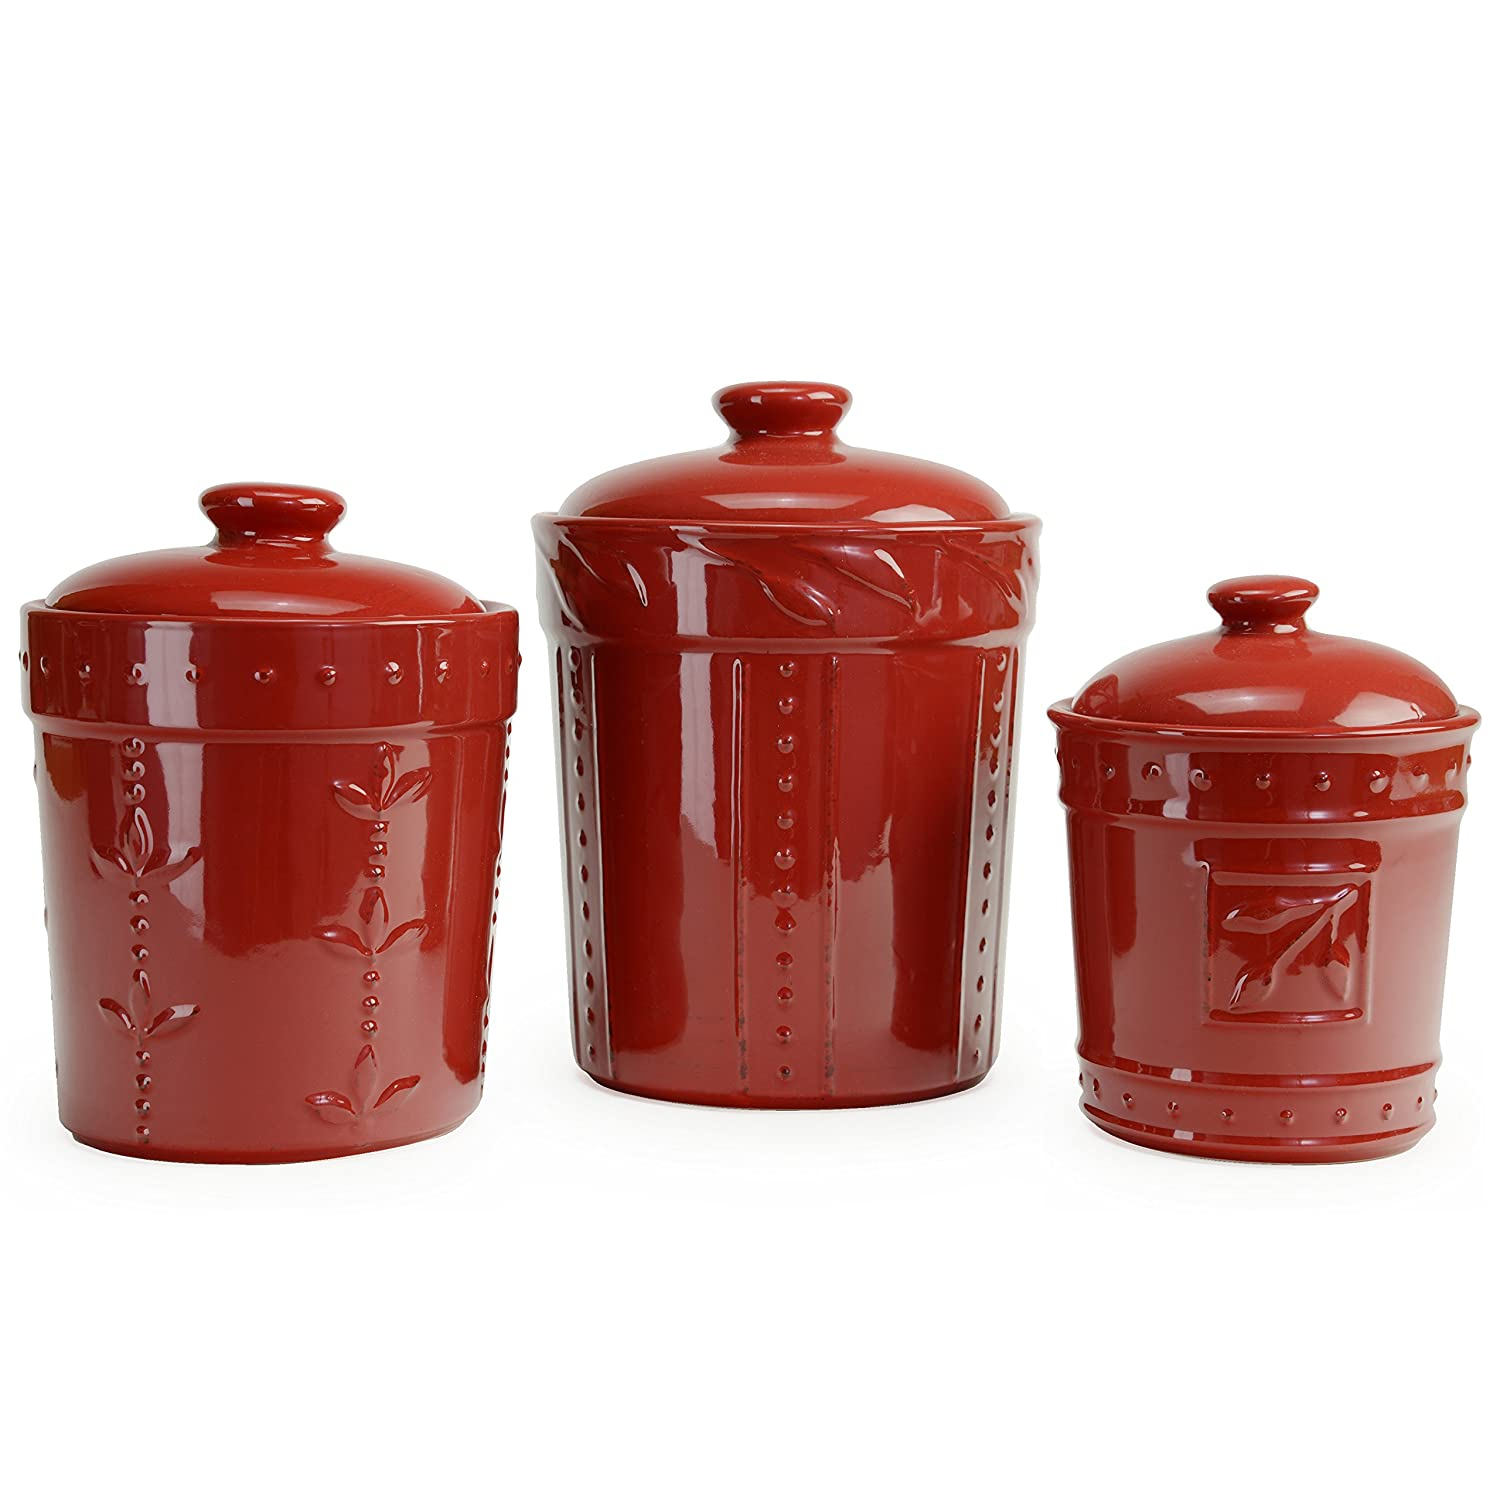 Signature Housewares Sorrento Collection Set of Three Canisters, 80 Ounce, 48 Ounce, 36 Ounce, Ruby